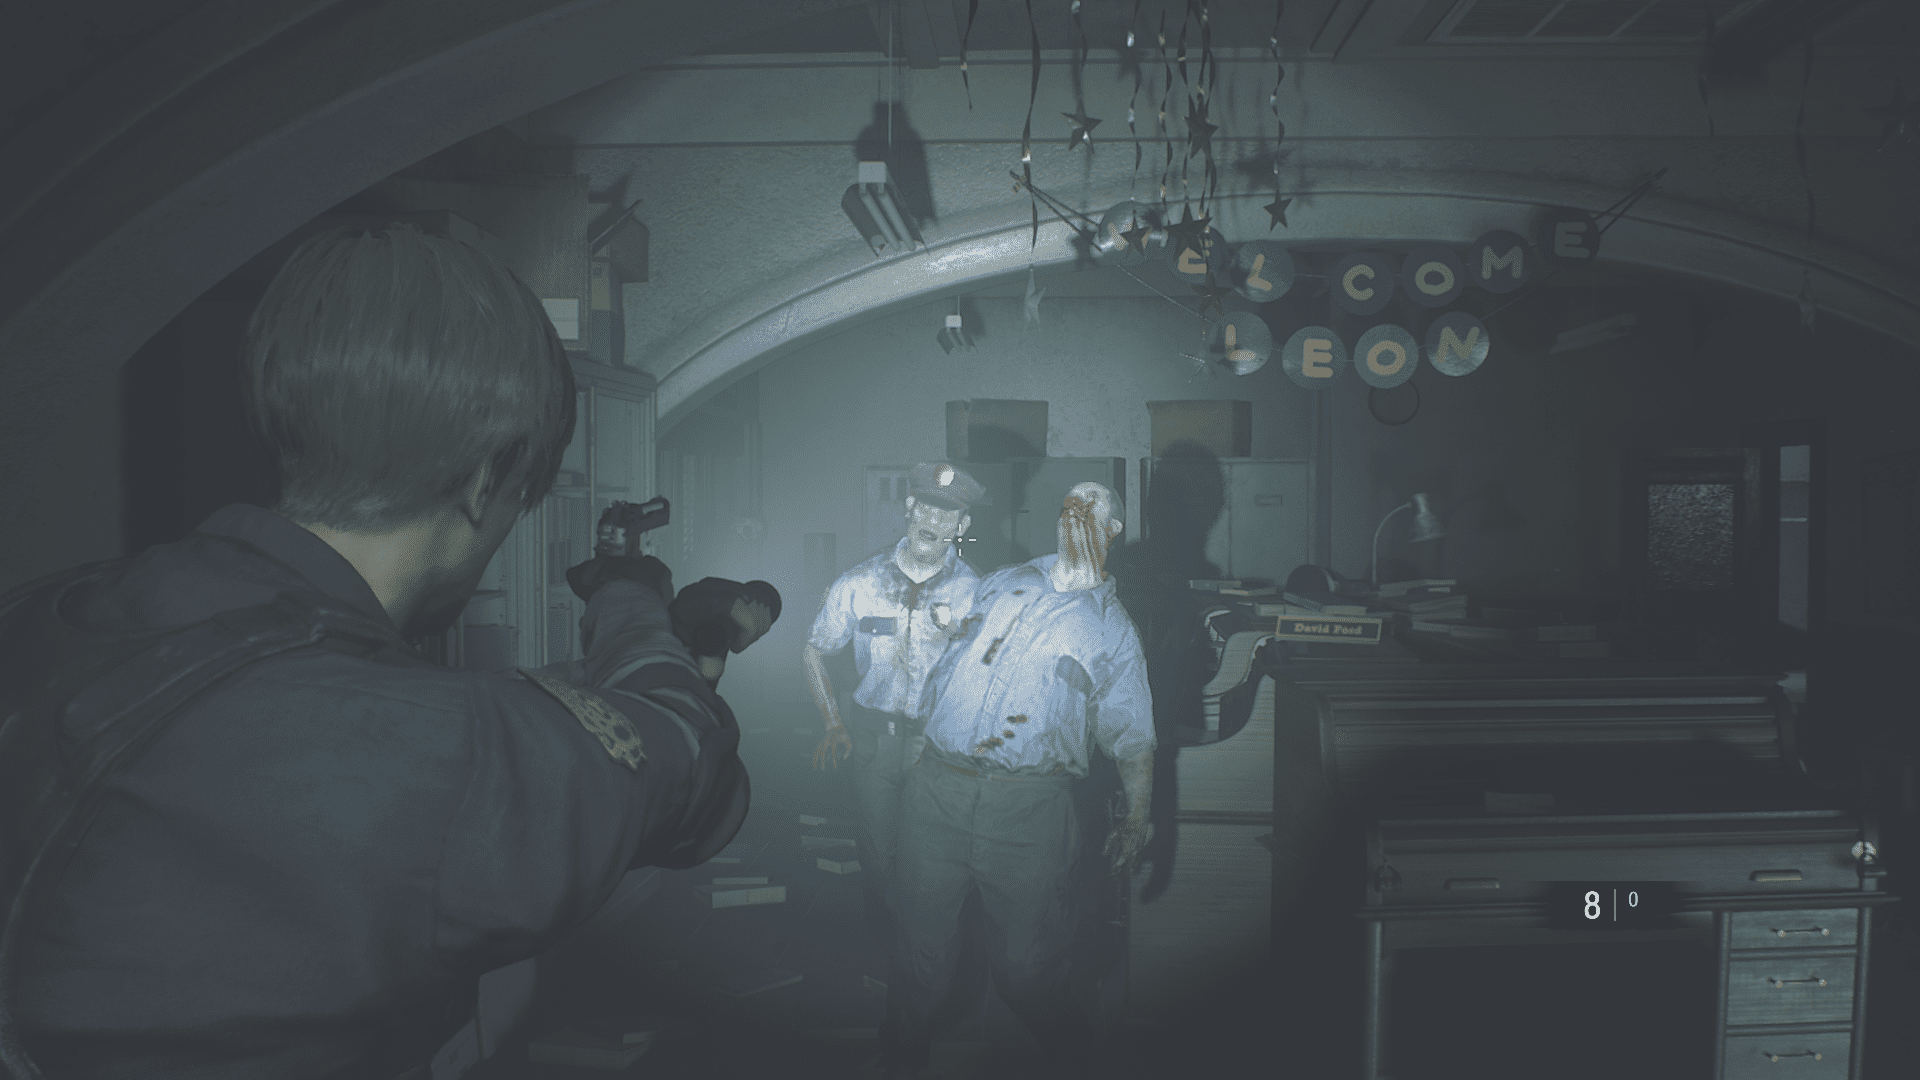 RESIDENT EVIL 2 20190122181043 - Resident Evil 2 Review - Take Me Down To Raccoon City